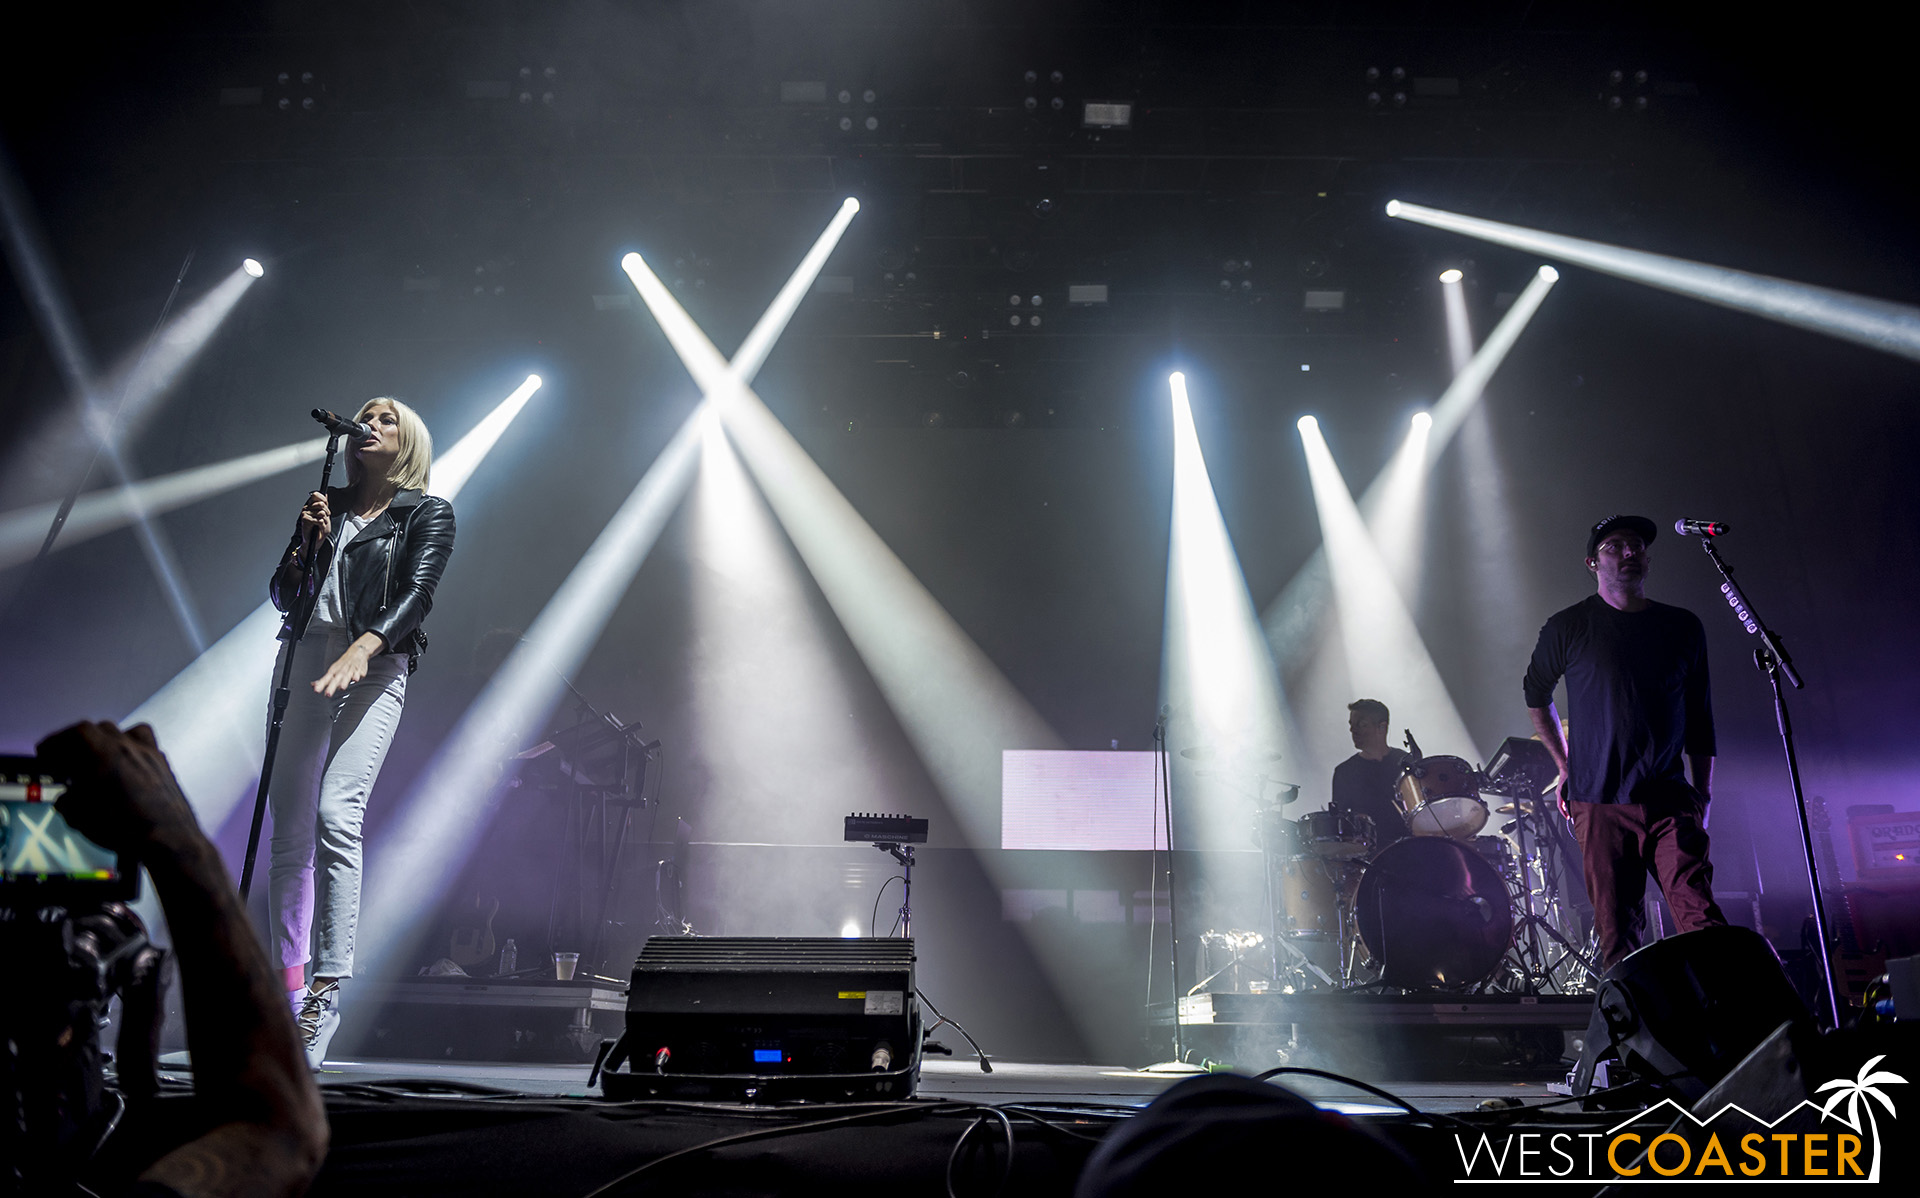 Brooklyn-based Phantogram took the stage in the early evening hours.